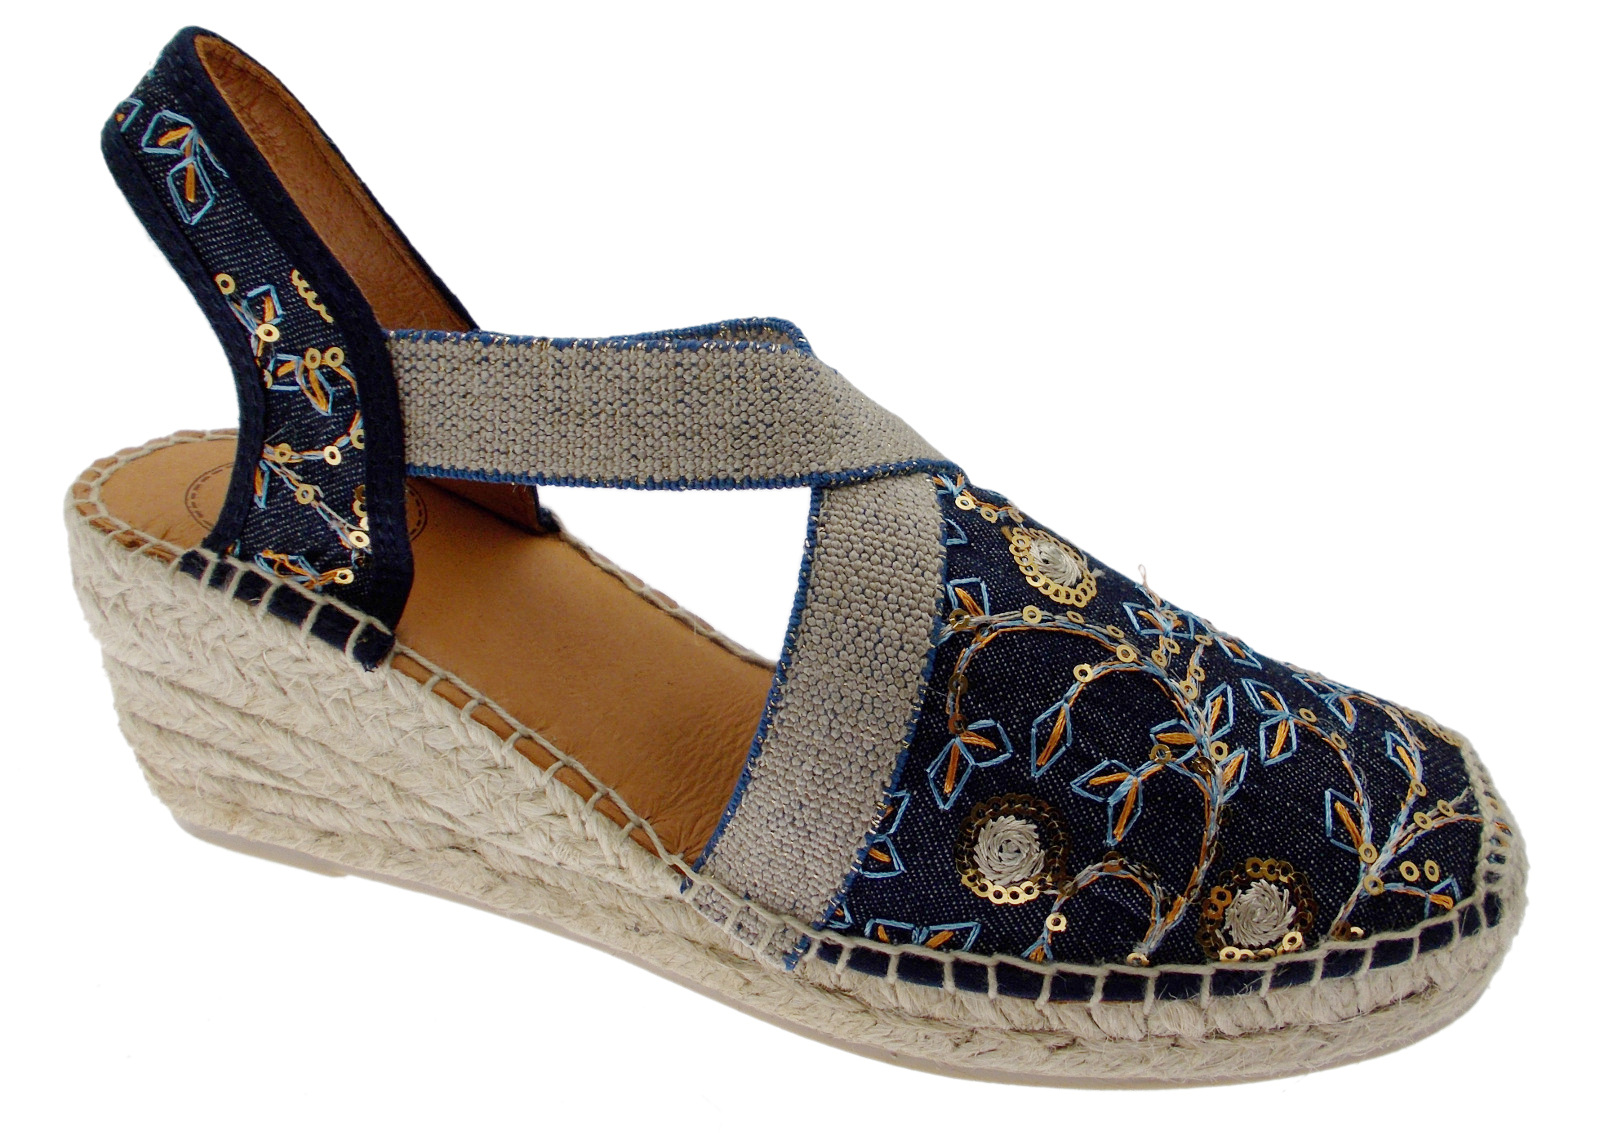 EARTH - OR texa espadrilles jeans embroidery Toni Pons